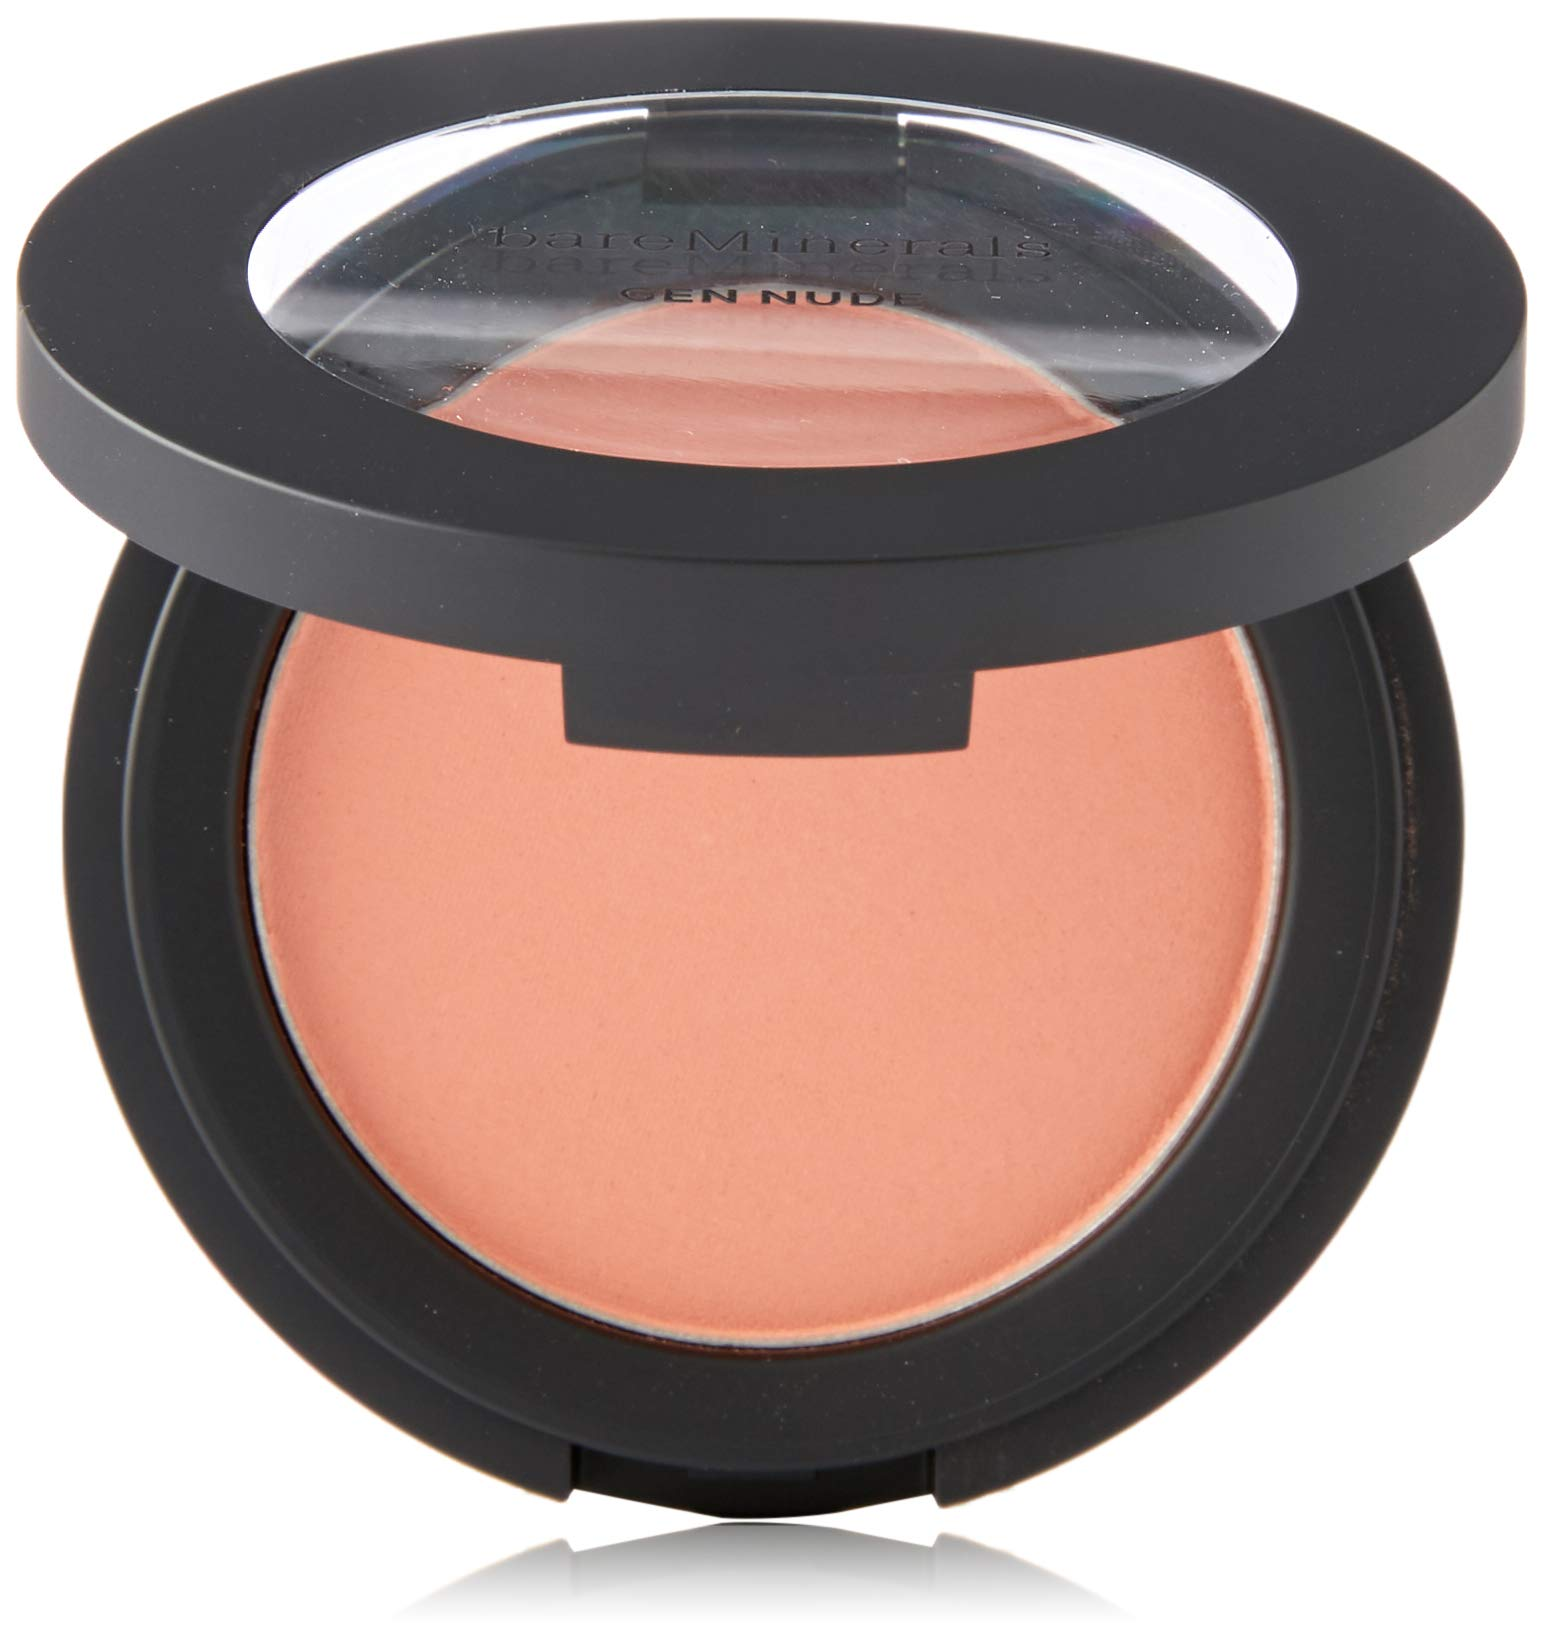 bareMinerals Gen Nude Powder Blush for Women, That Peach Tho, 0.21 Ounce by bare Minerals